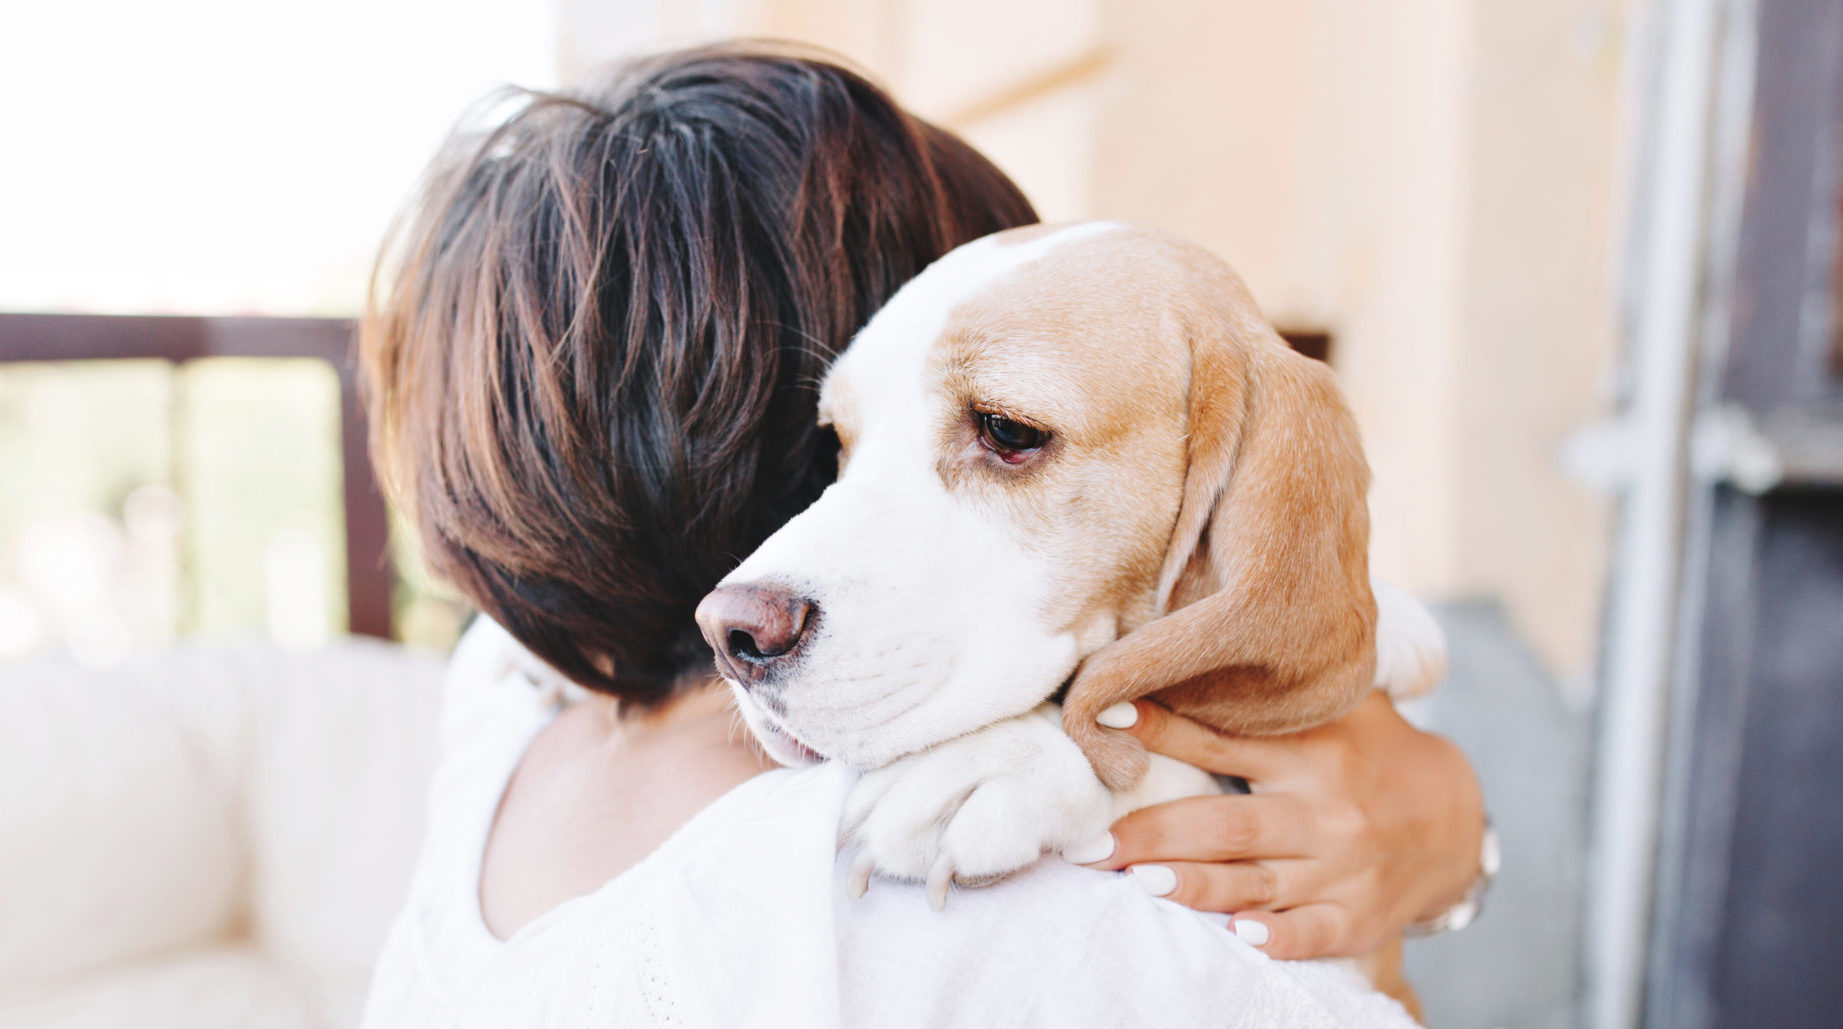 photo of owner holding aged terminal pet dog